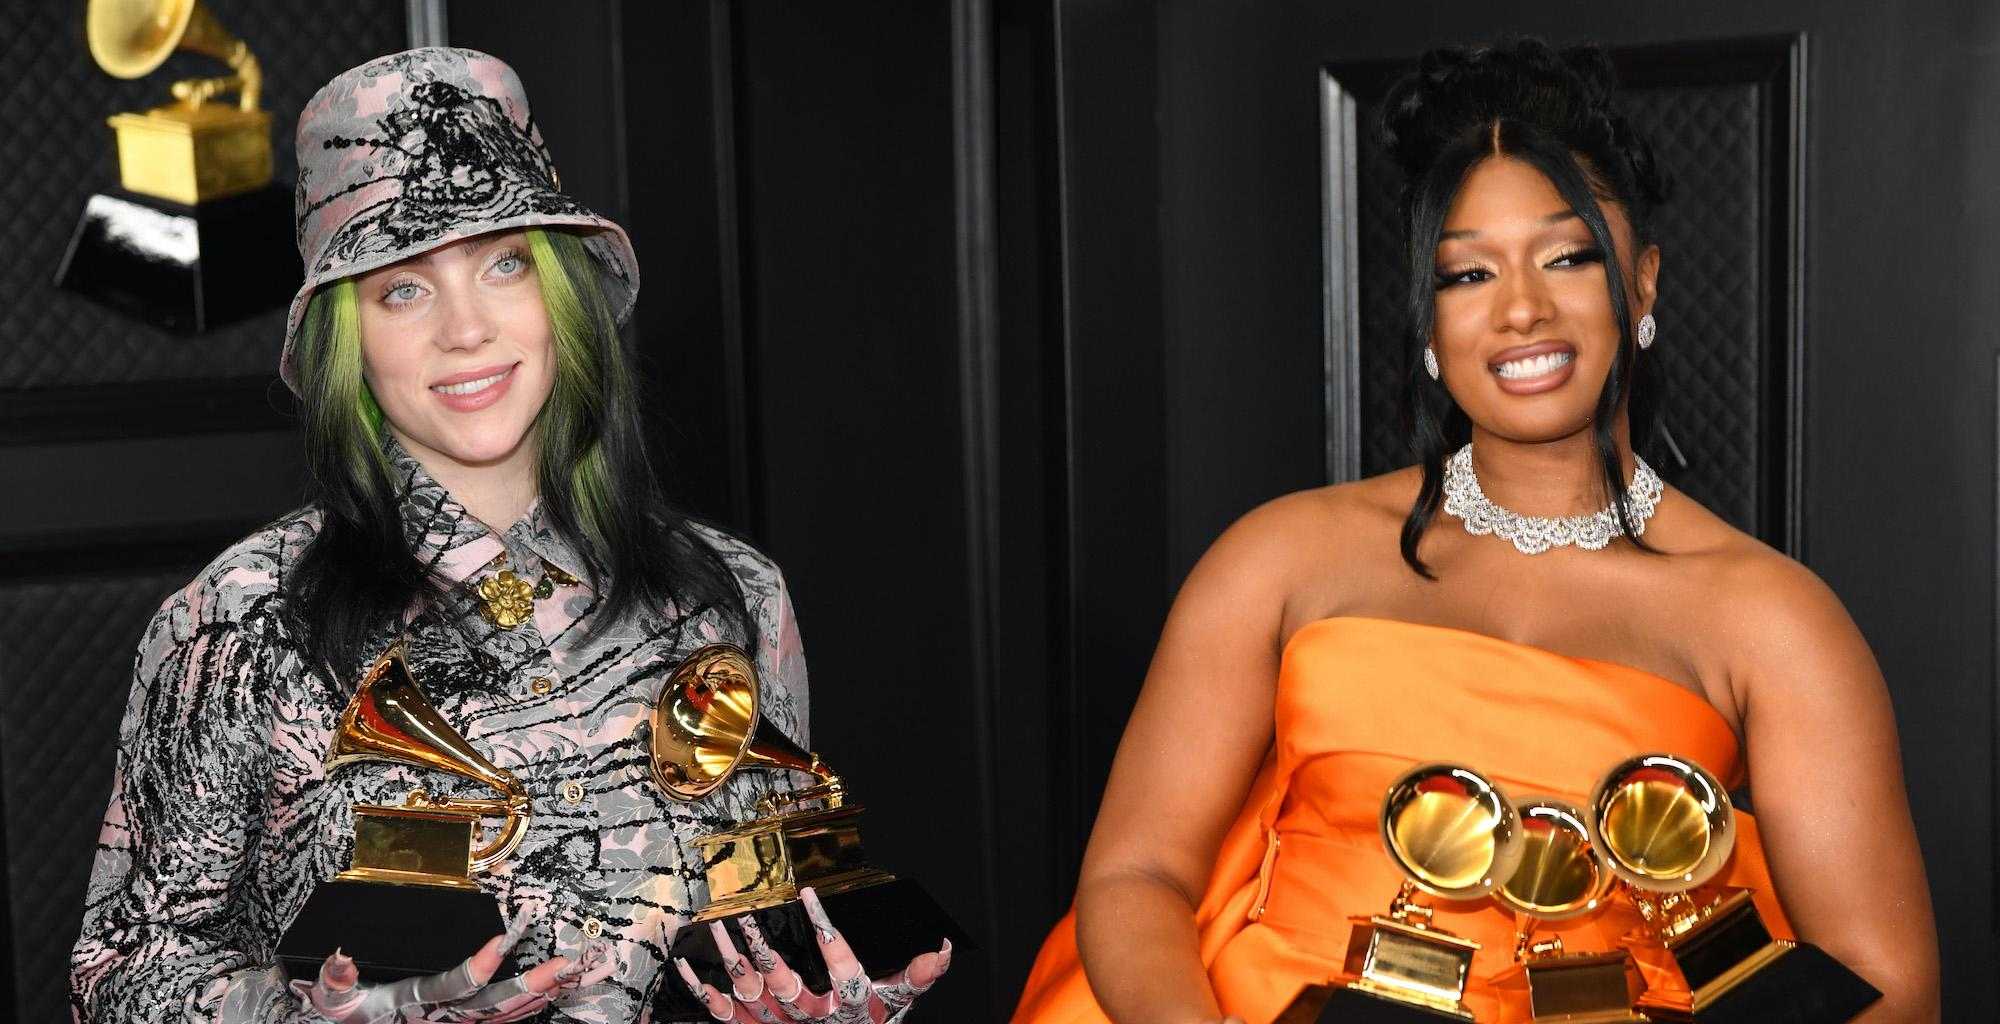 Billie Eilish Gushes Over Megan Thee Stallion During GRAMMY Acceptance Speech - Says She Deserved To Win Record Of The Year Instead